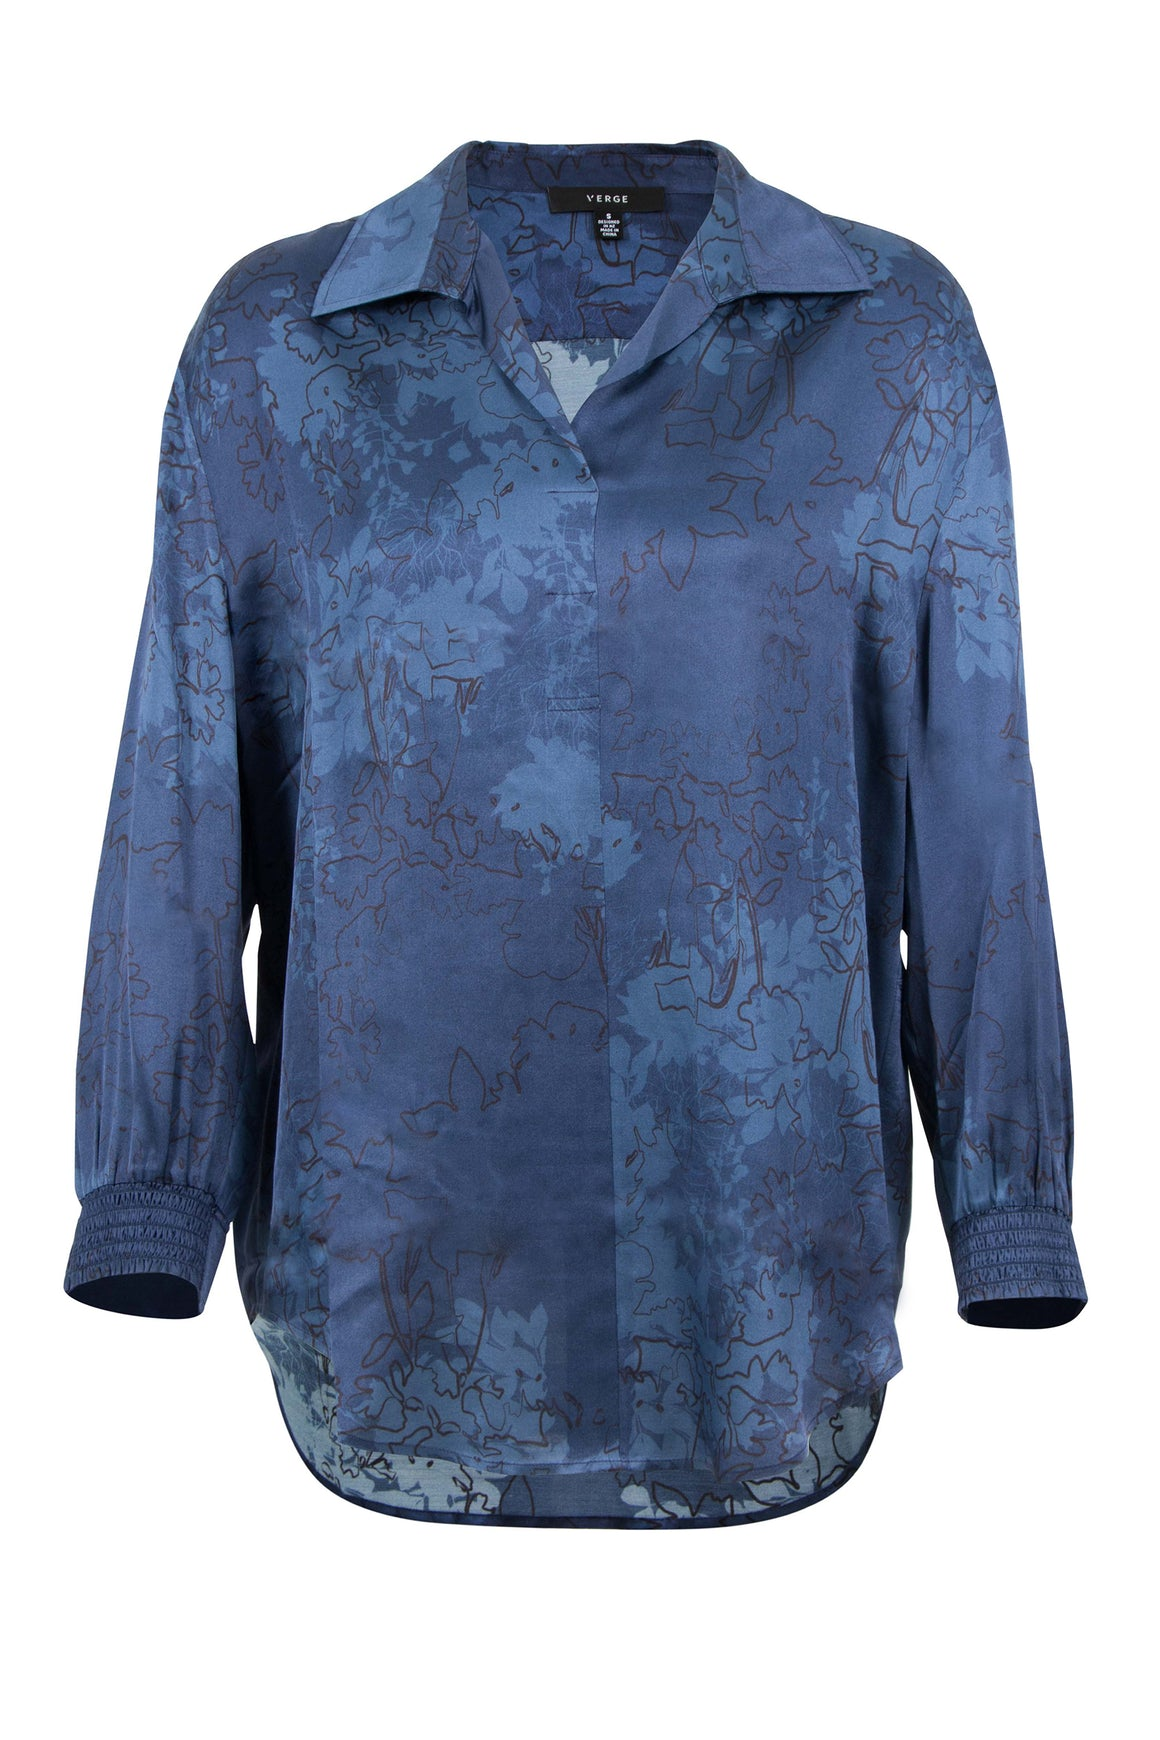 MULBERRY SHIRT 5770FN